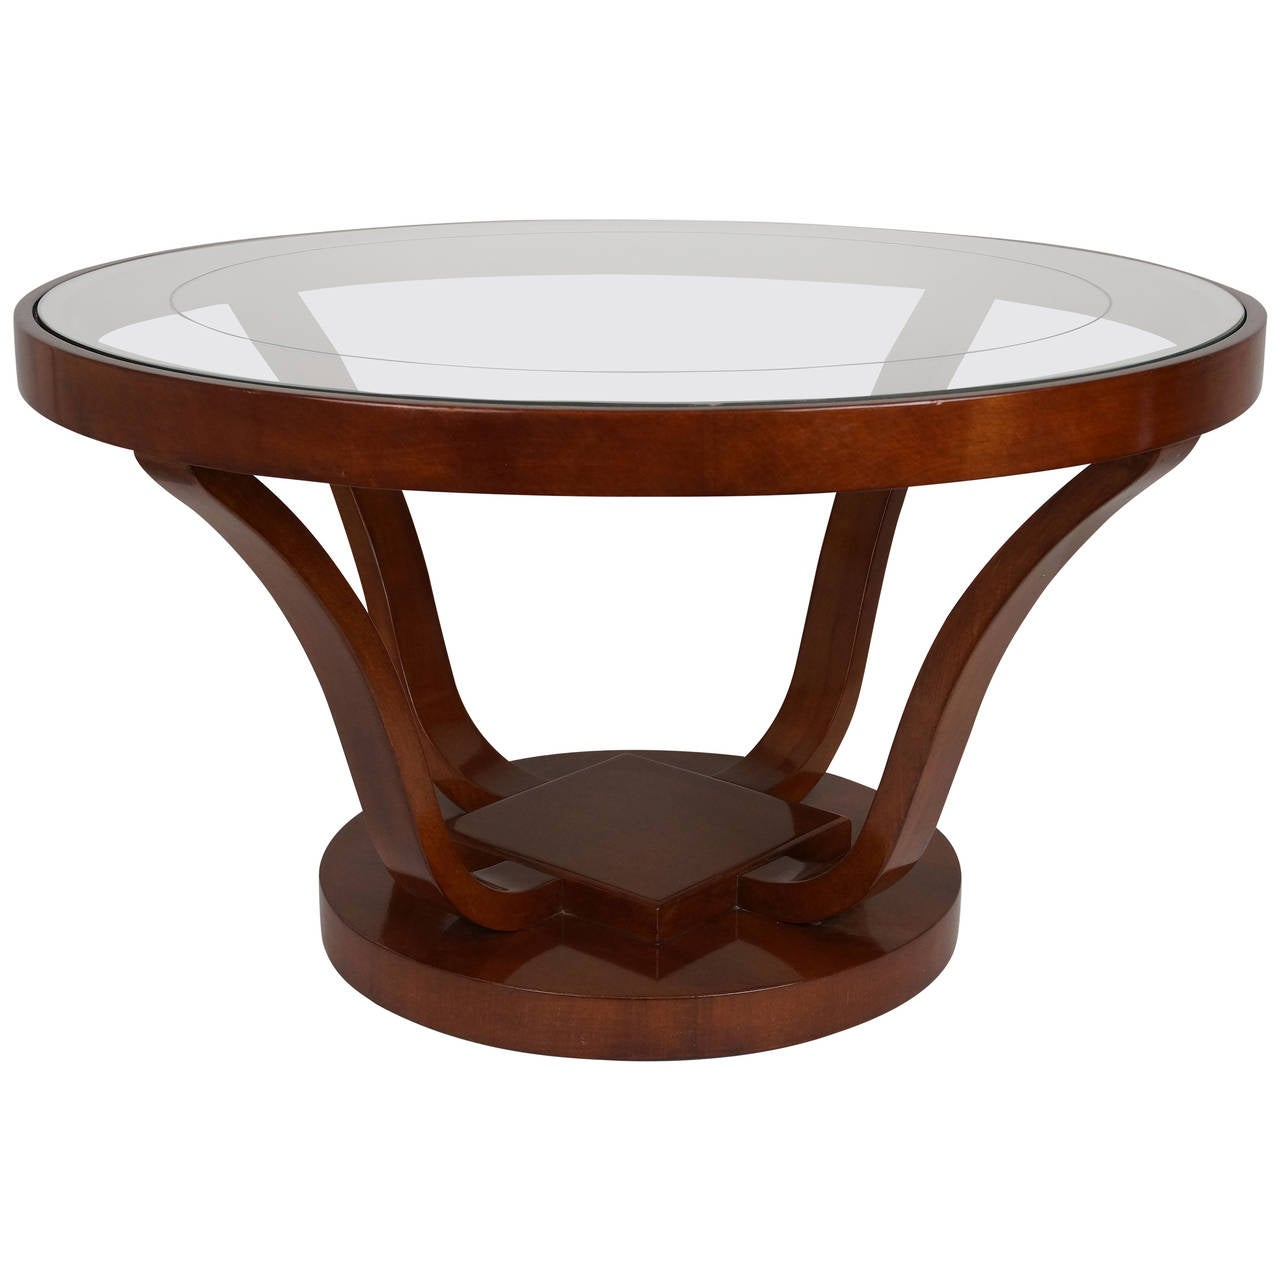 Art deco style round cocktail or coffee table by brown saltman of california at 1stdibs - Archives departementales 33 tables decennales ...